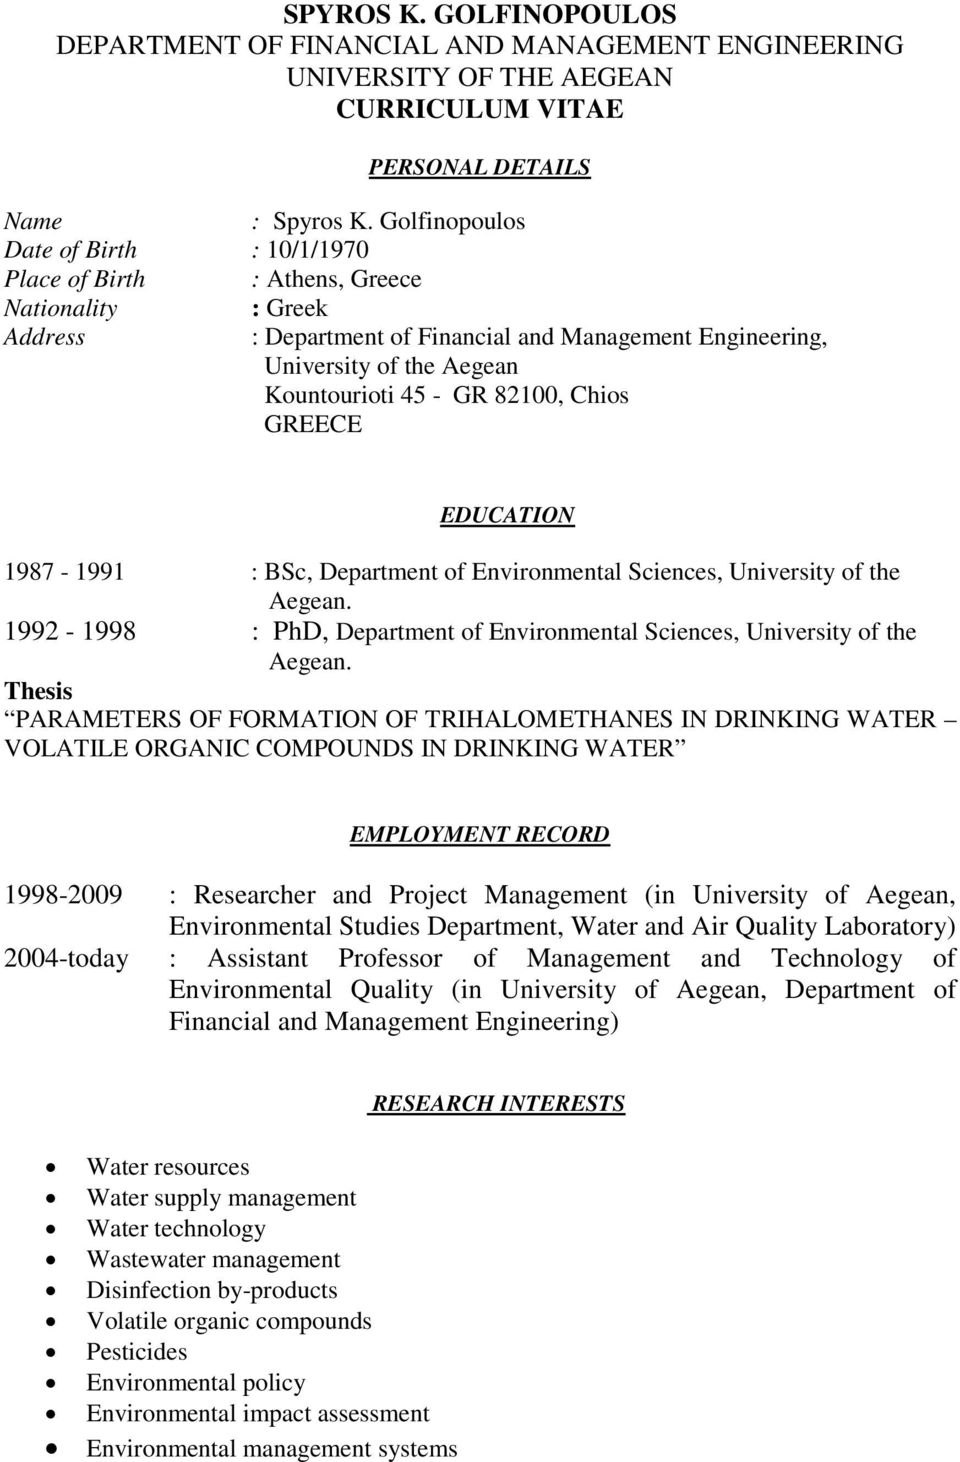 82100, Chios GREECE EDUCATION 1987-1991 : BSc, Department of Environmental Sciences, University of the Aegean. 1992-1998 : PhD, Department of Environmental Sciences, University of the Aegean.